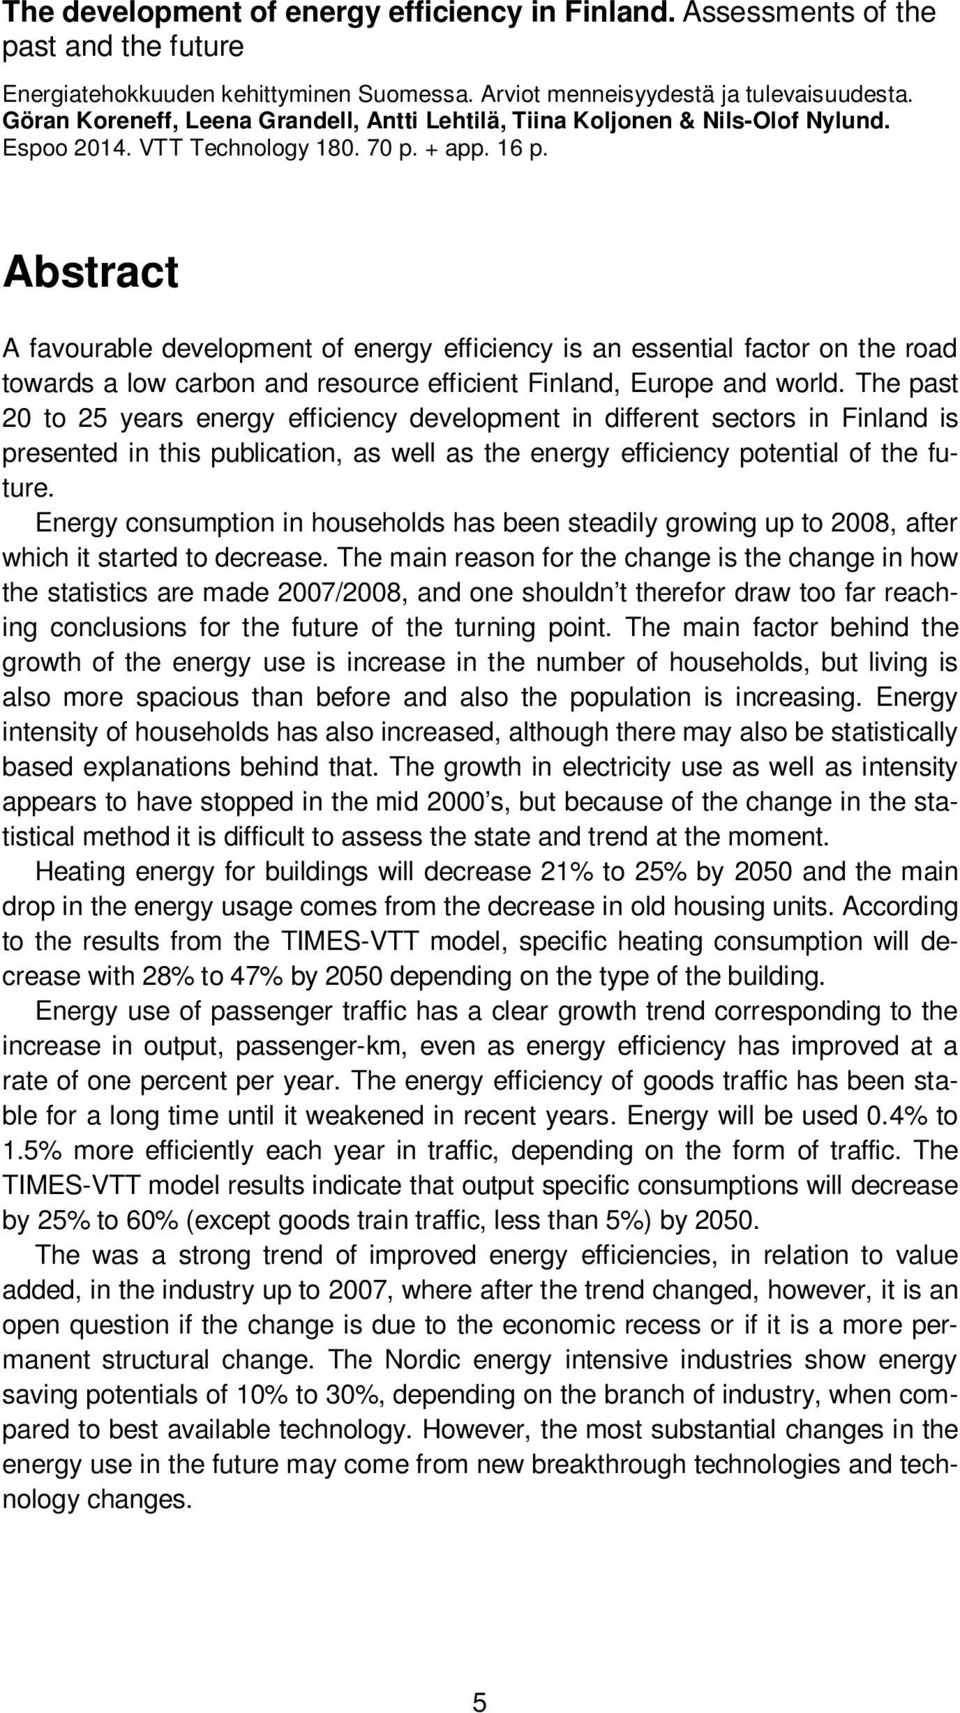 Abstract A favourable development of energy efficiency is an essential factor on the road towards a low carbon and resource efficient Finland, Europe and world.